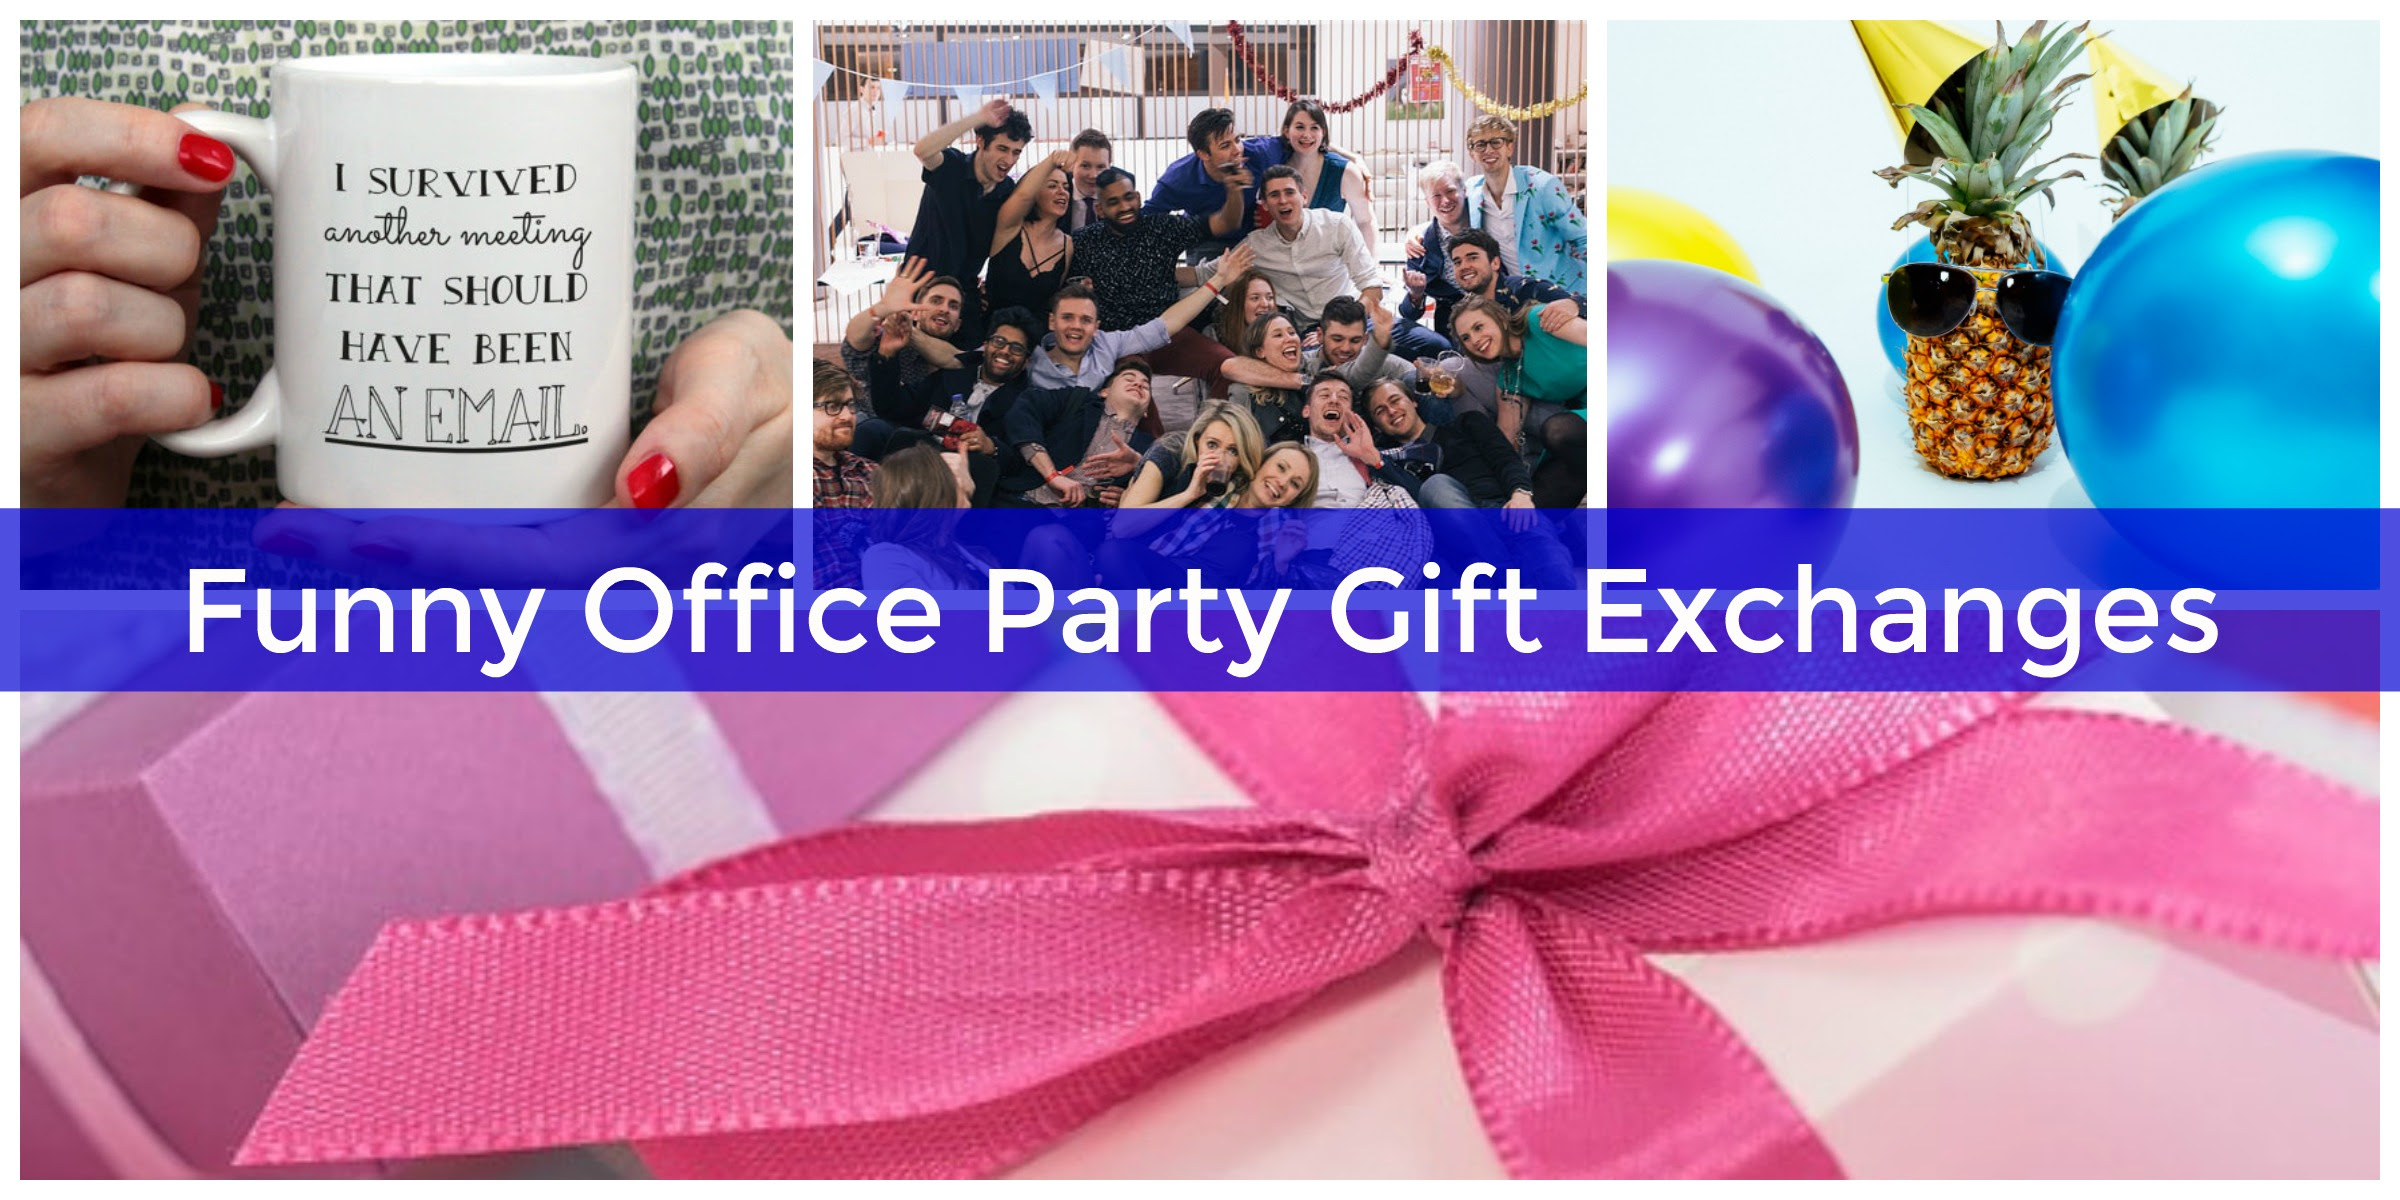 Hilarious Office Party Gift Exchange Ideas For Creative Coworkers